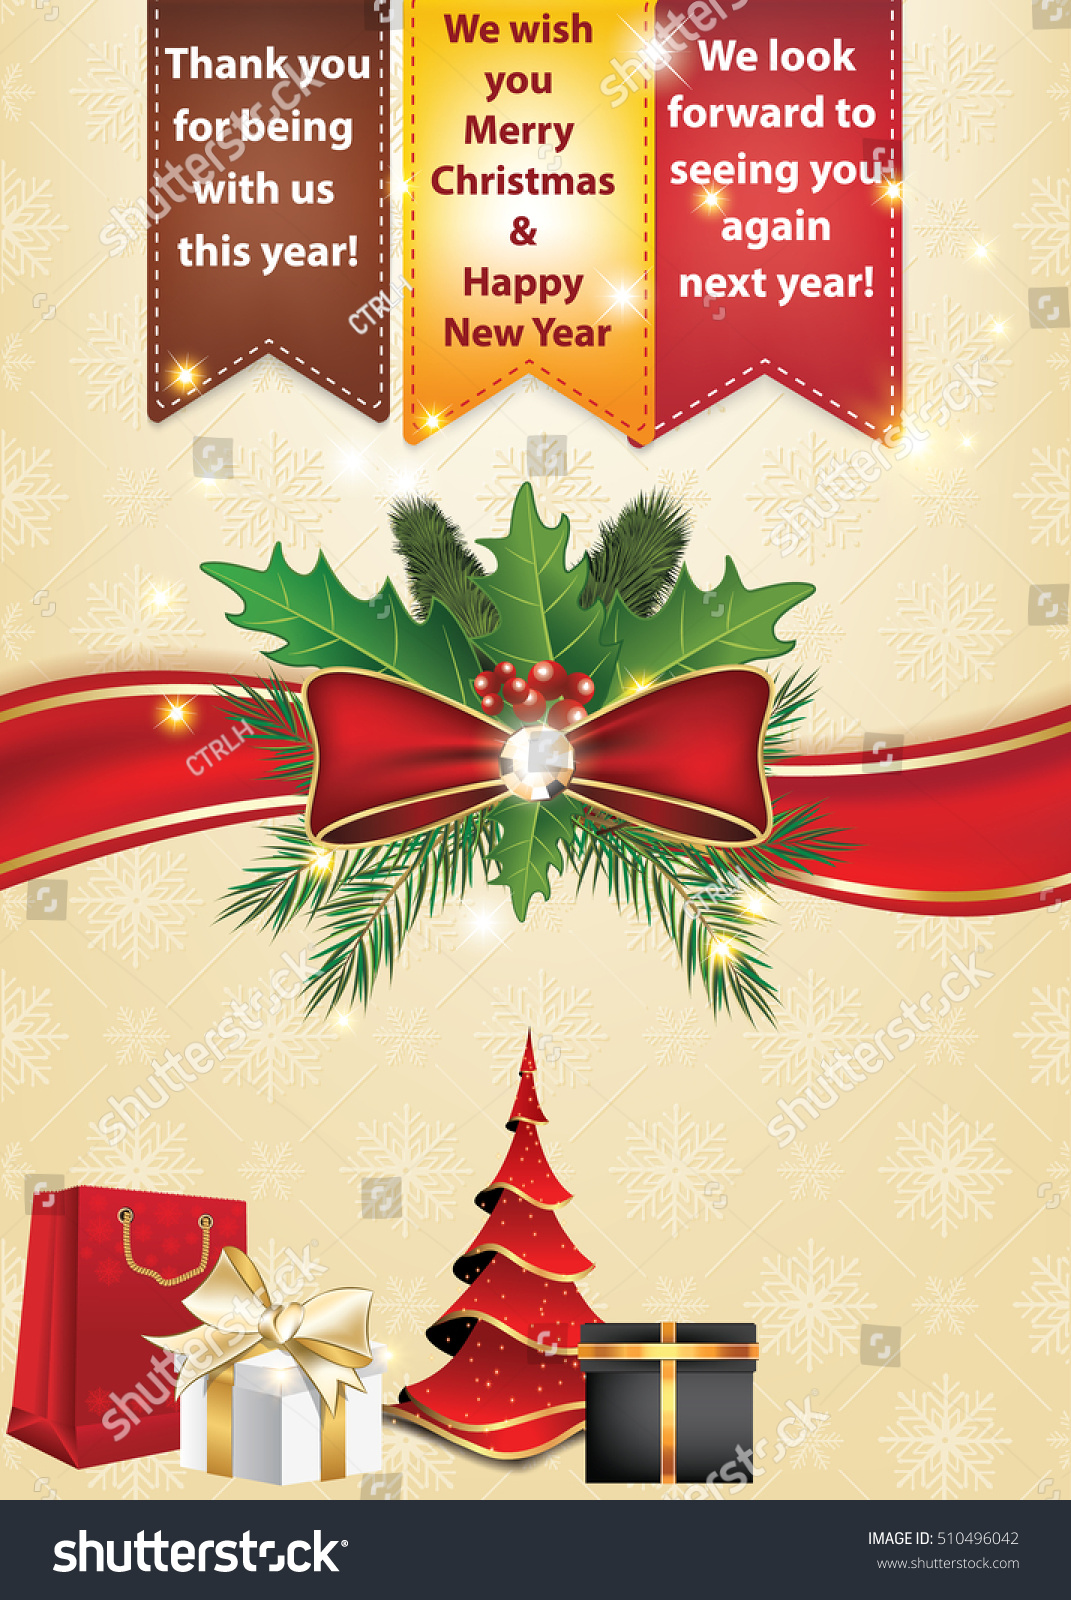 Thank You Business Christmas New Year Stock Illustration 510496042